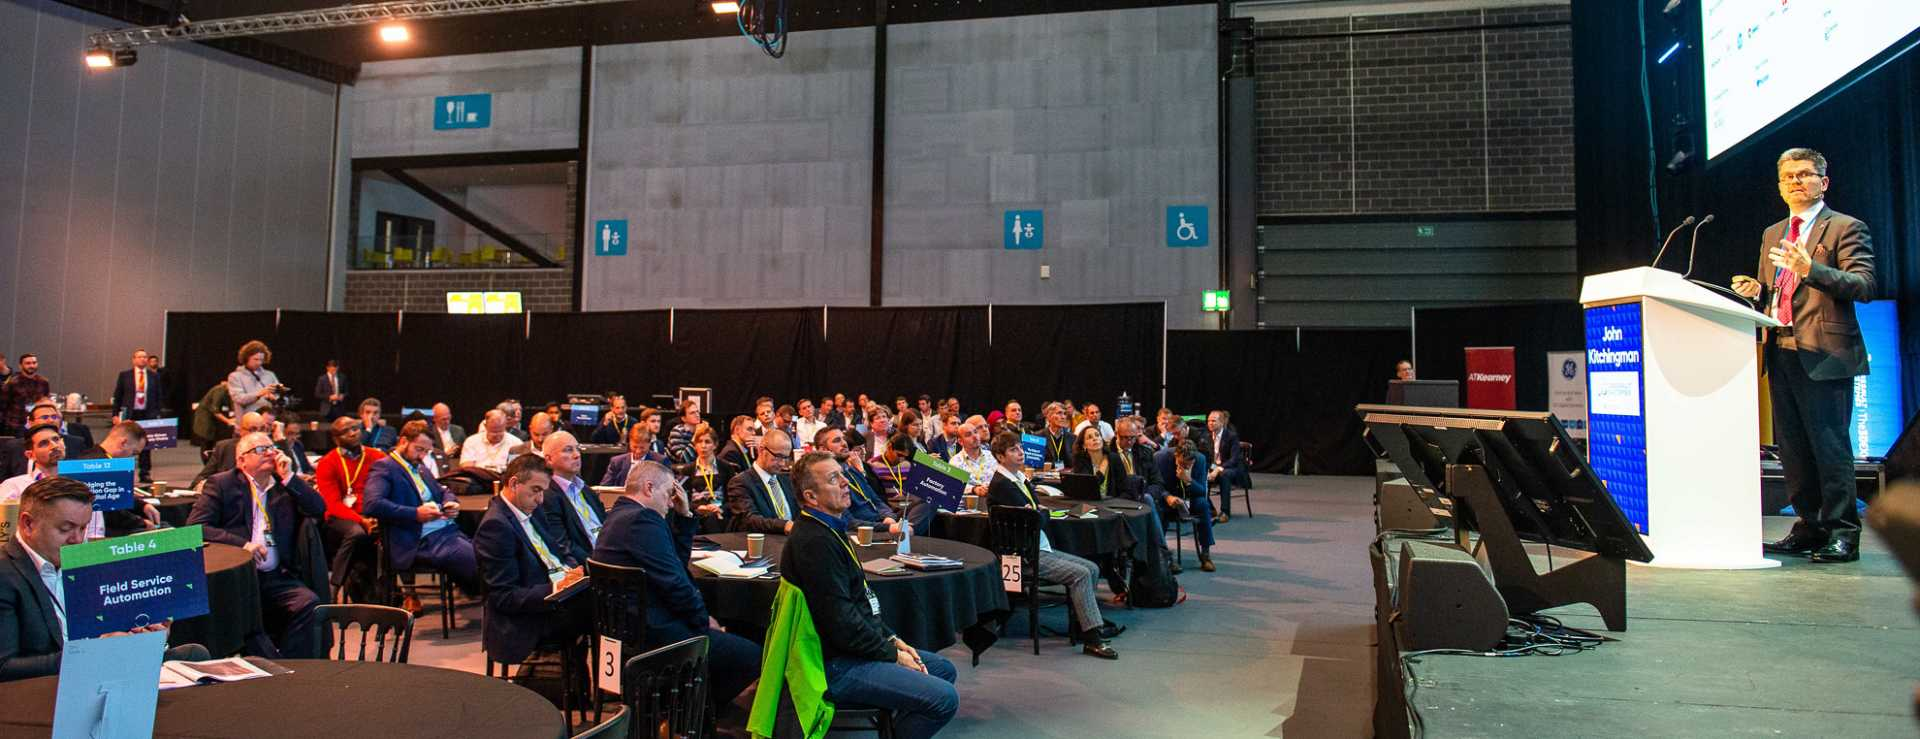 Business Sustainability - John Kitchingman, managing director – EuroNorth for Dassault Systèmes, took to the main stage at Manufacturing Leaders' Summit 2019 - image courtesy of The Manufacturer.